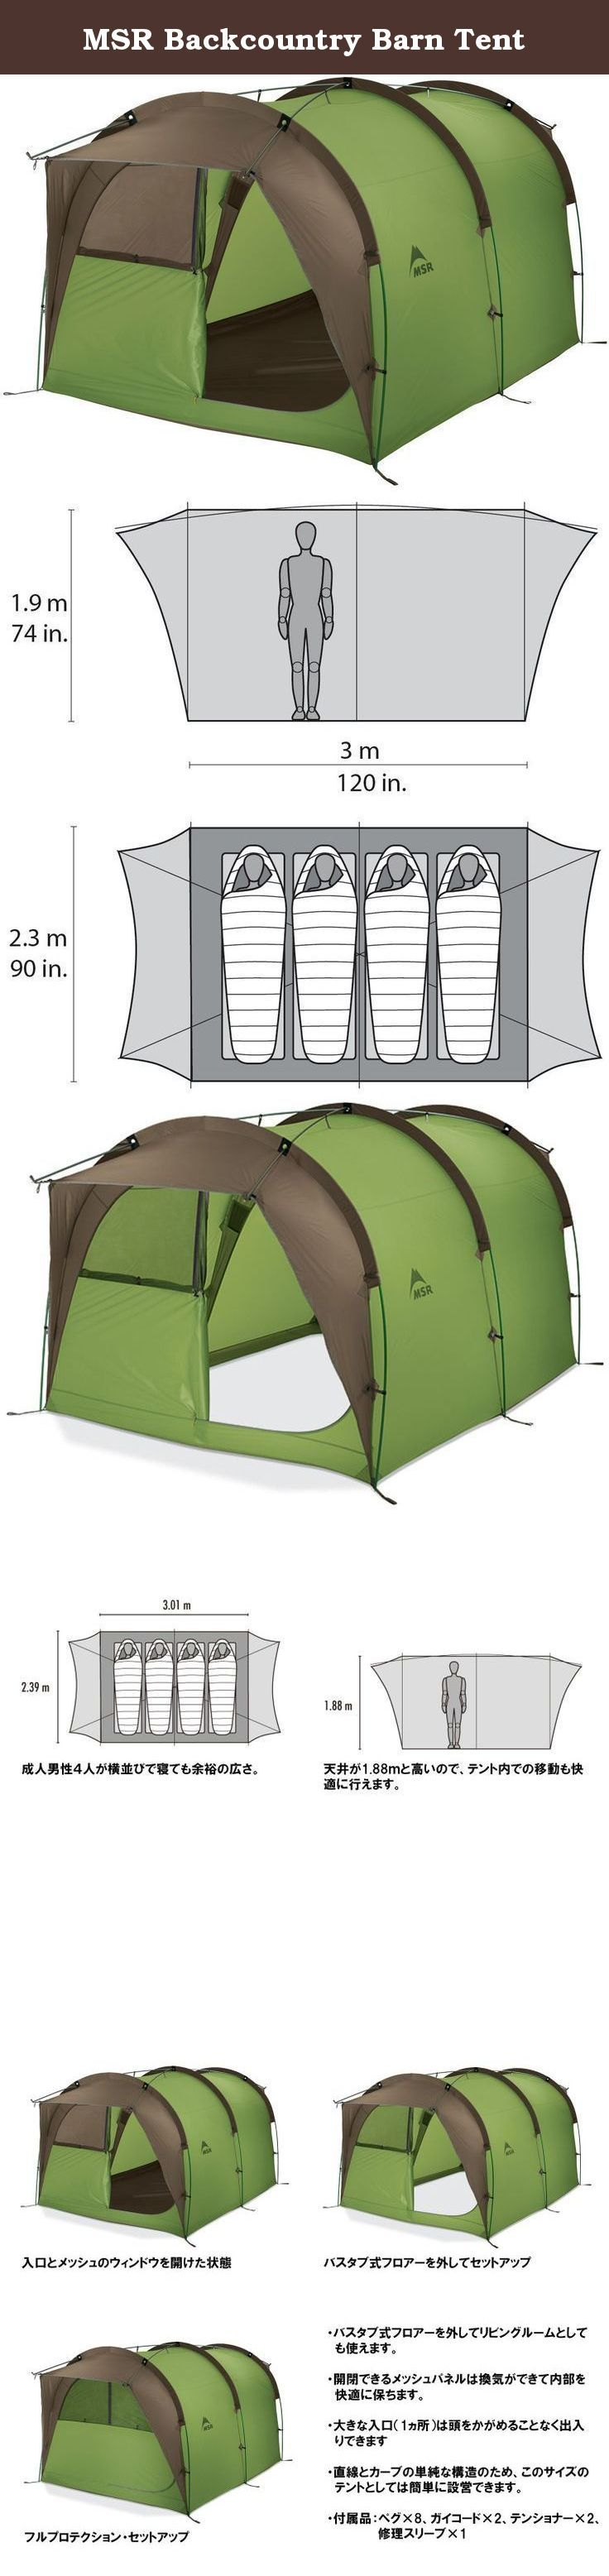 MSR Backcountry Barn Tent. Sleeps 4-5 people and packs down to the size of many 3 person tents. Min weight: 6.65kg/14lbs 11oz, Floor area: 7.4 sq m/80 sq ft, Interior peak: 188cm/74 in, Livable volume: 9797L/346cu ft.